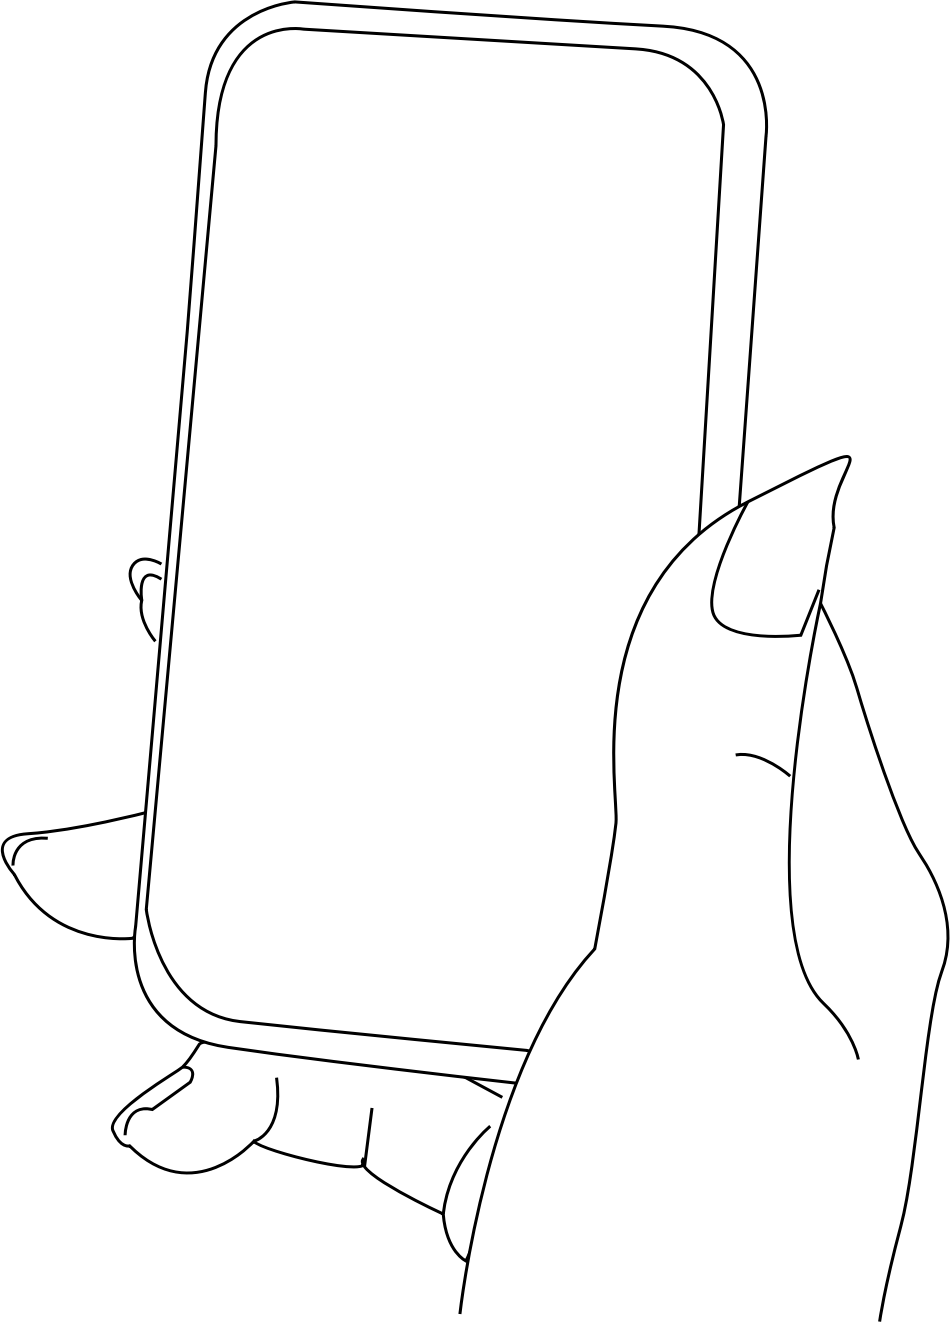 Hand with Smartphone by entropy_eater